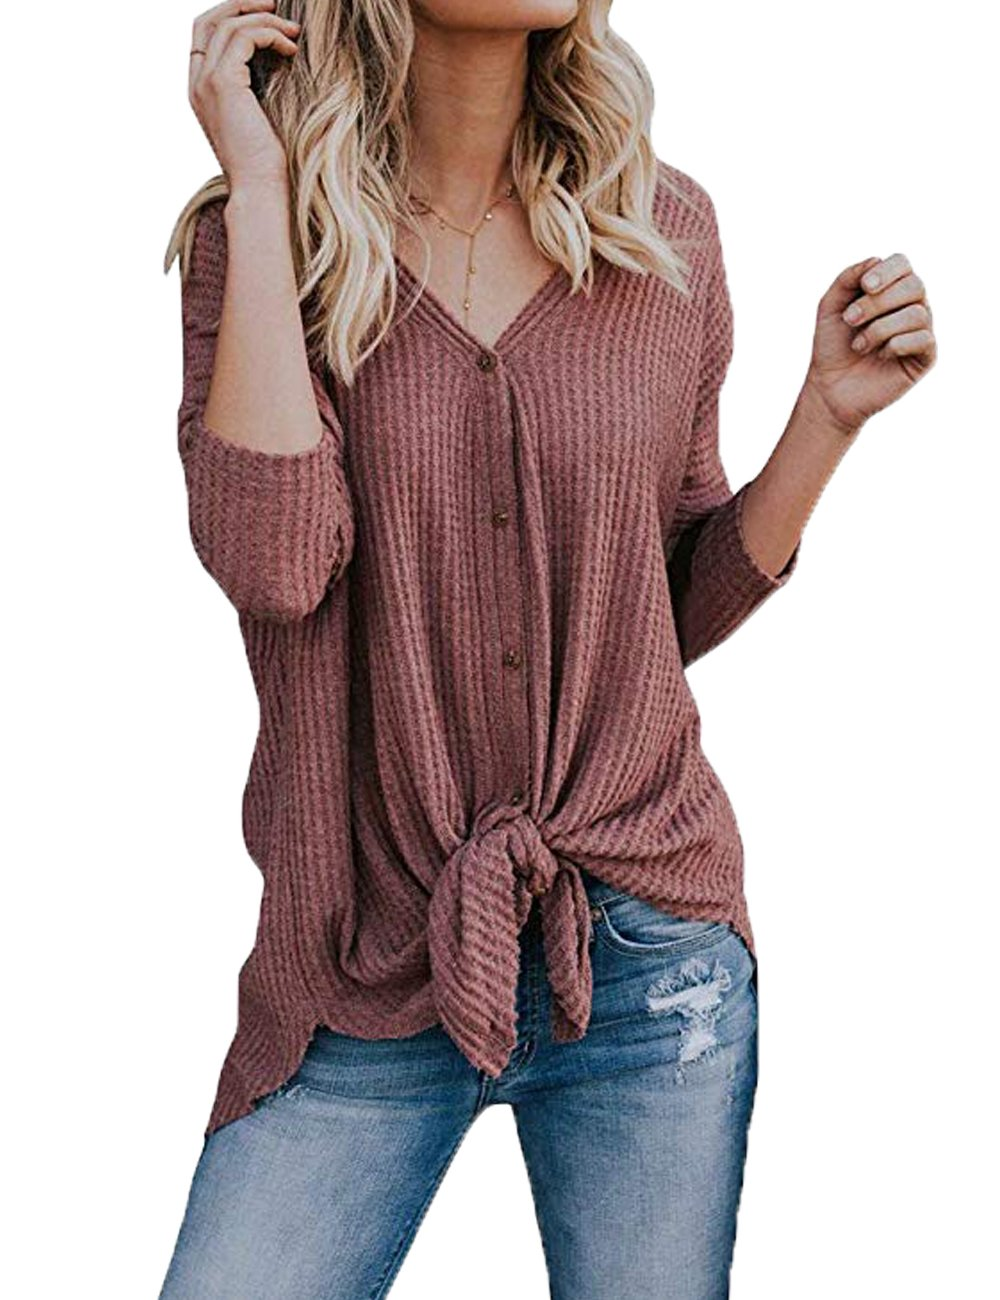 VYNCS Women's Casual Button Down Loose Tie Knot Knit Sweaters Shirts Henley Long Sleeve V Neck Tunic Blouse Tops (Red, Large)